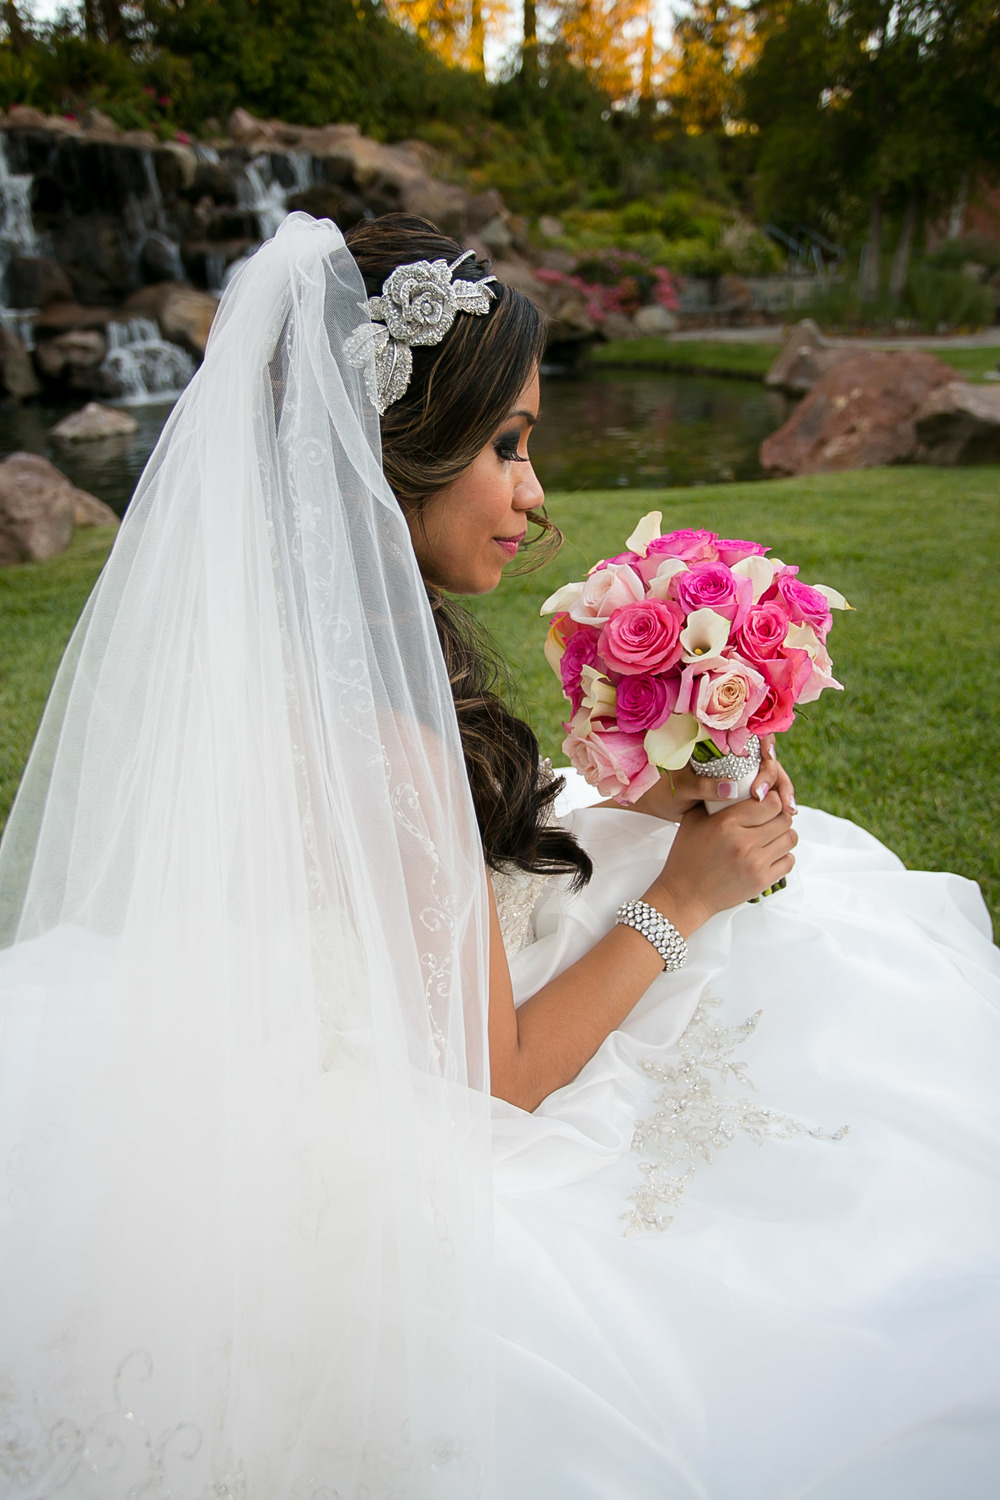 four seasons westlake village, bride, bridal portraits, los angeles wedding venues, los angeles wedding photography, chris holt photography, bridal portrait